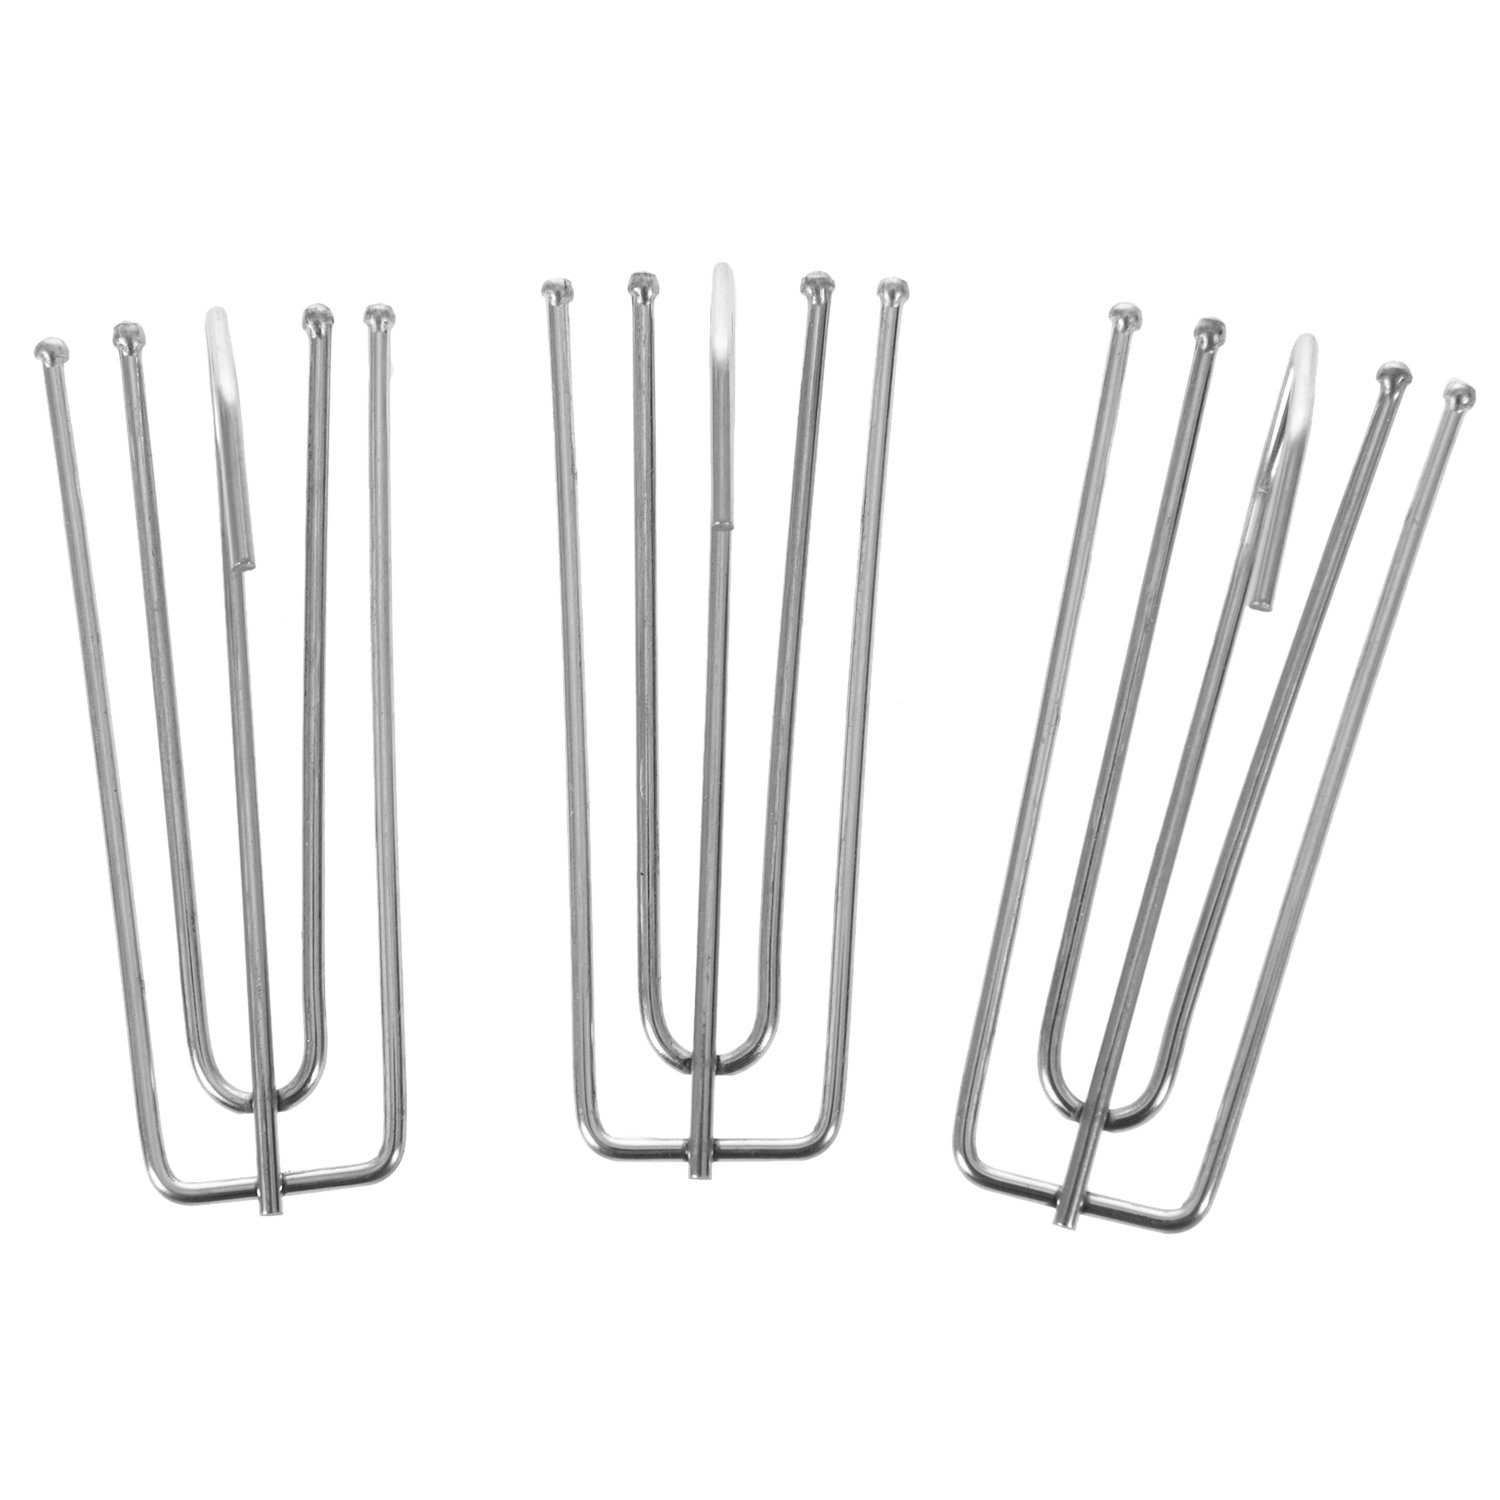 SODIAL Window Treatment 7cm Long 4 Pinch Pleat Drapes Curtain Hooks 10pcs